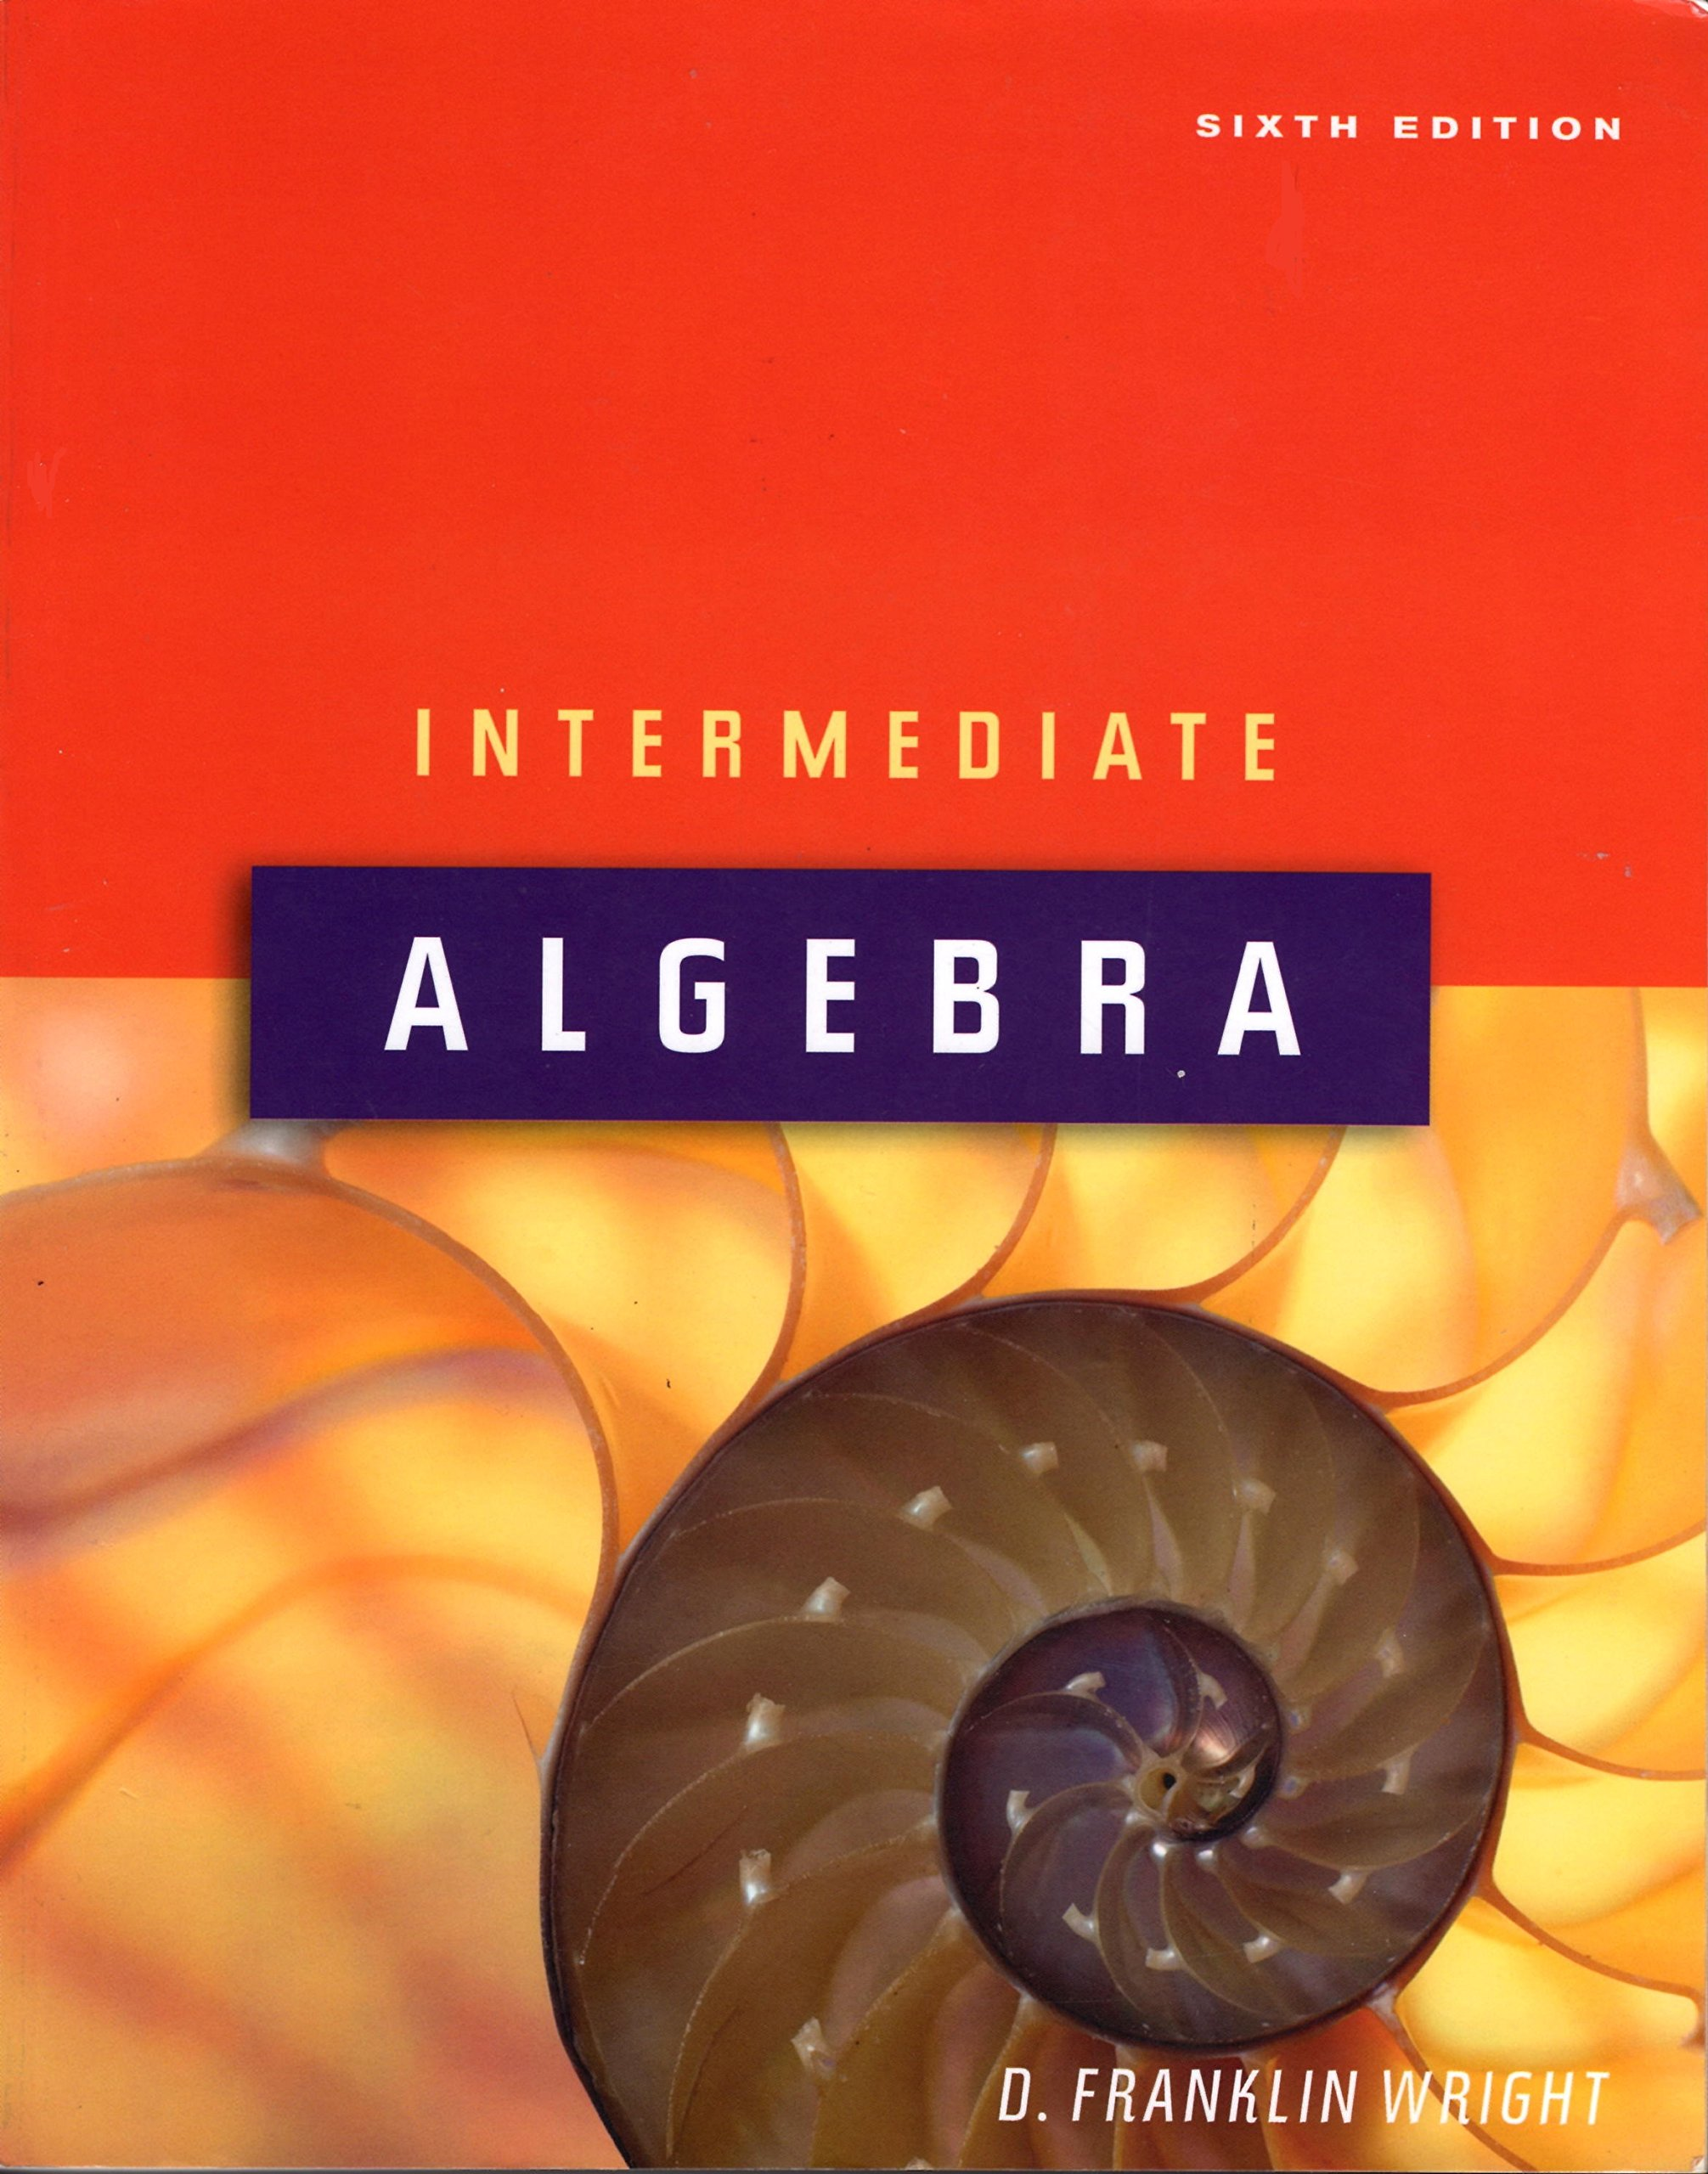 Intermediate algebra 6th edition ebook